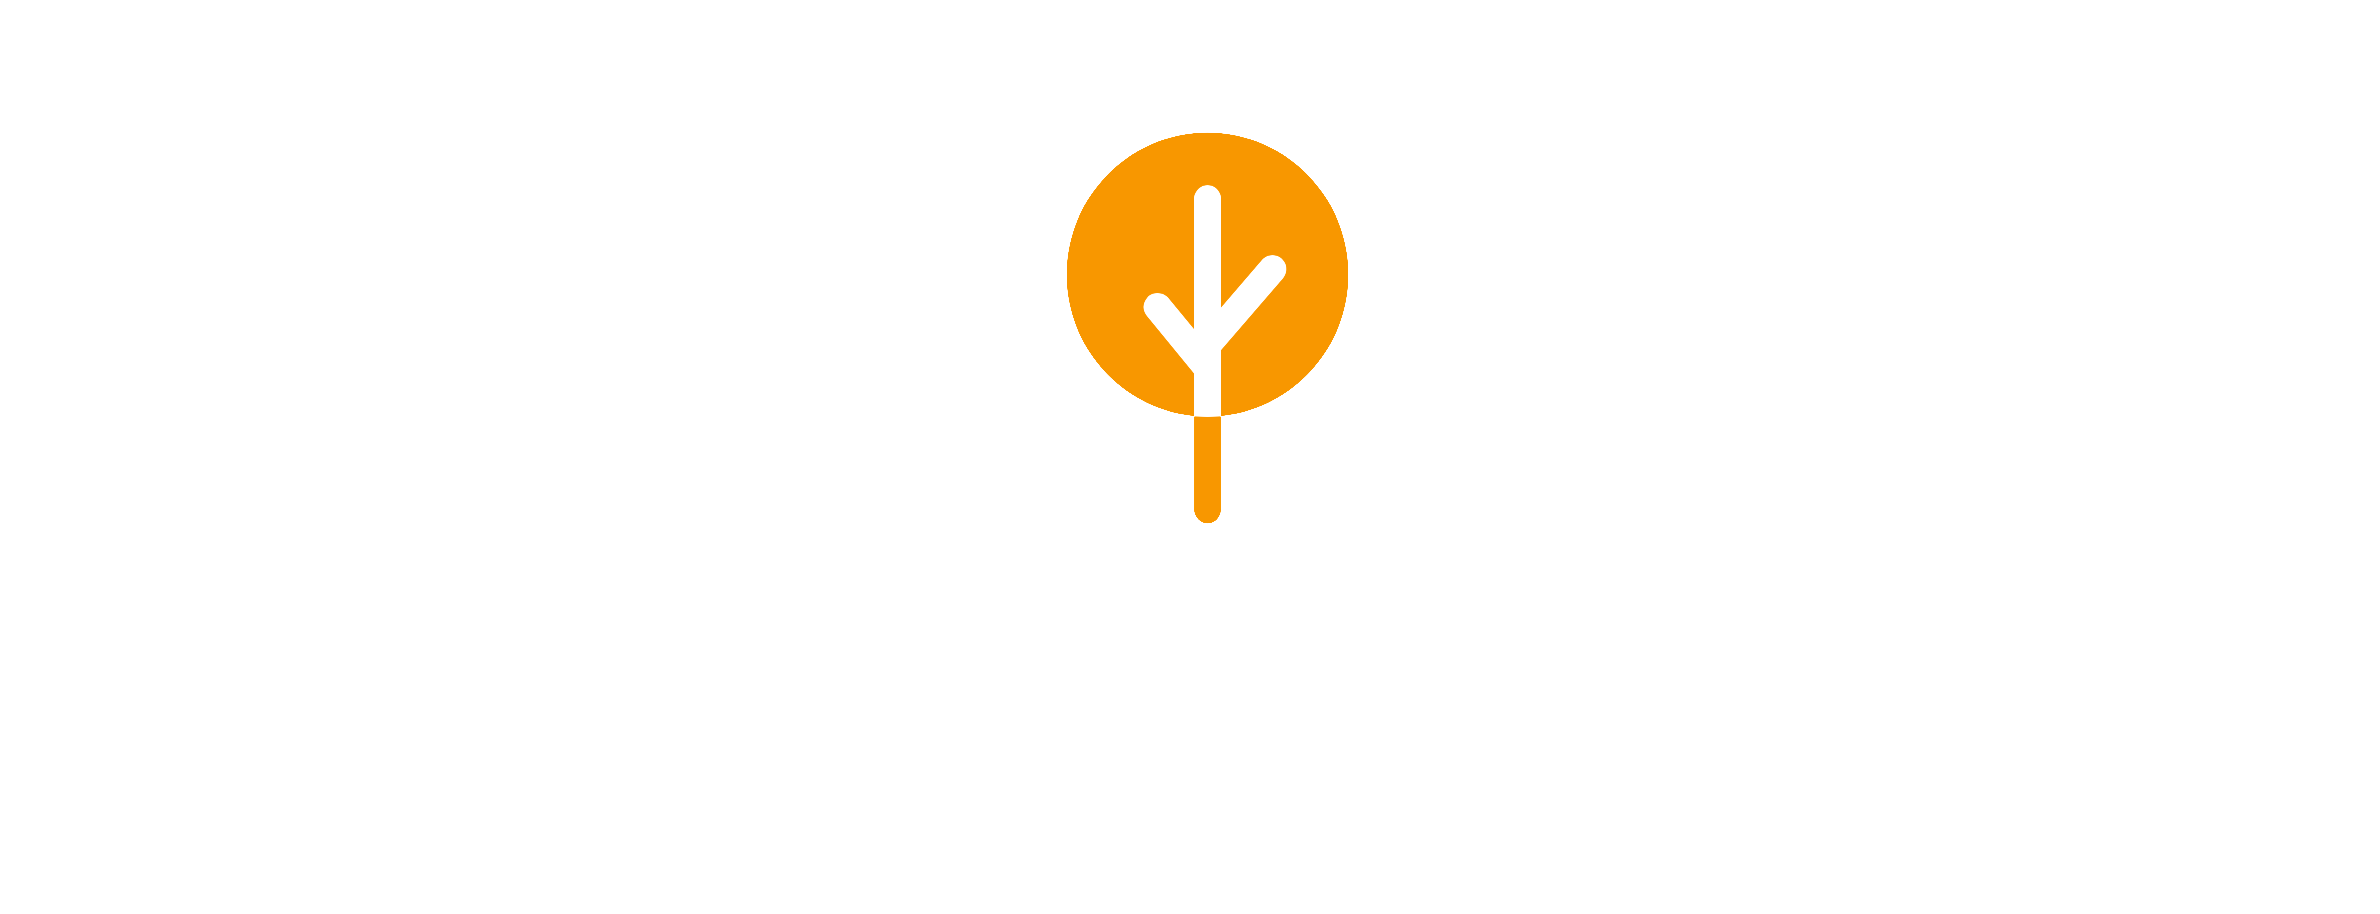 Richard Wood Education Logo.png